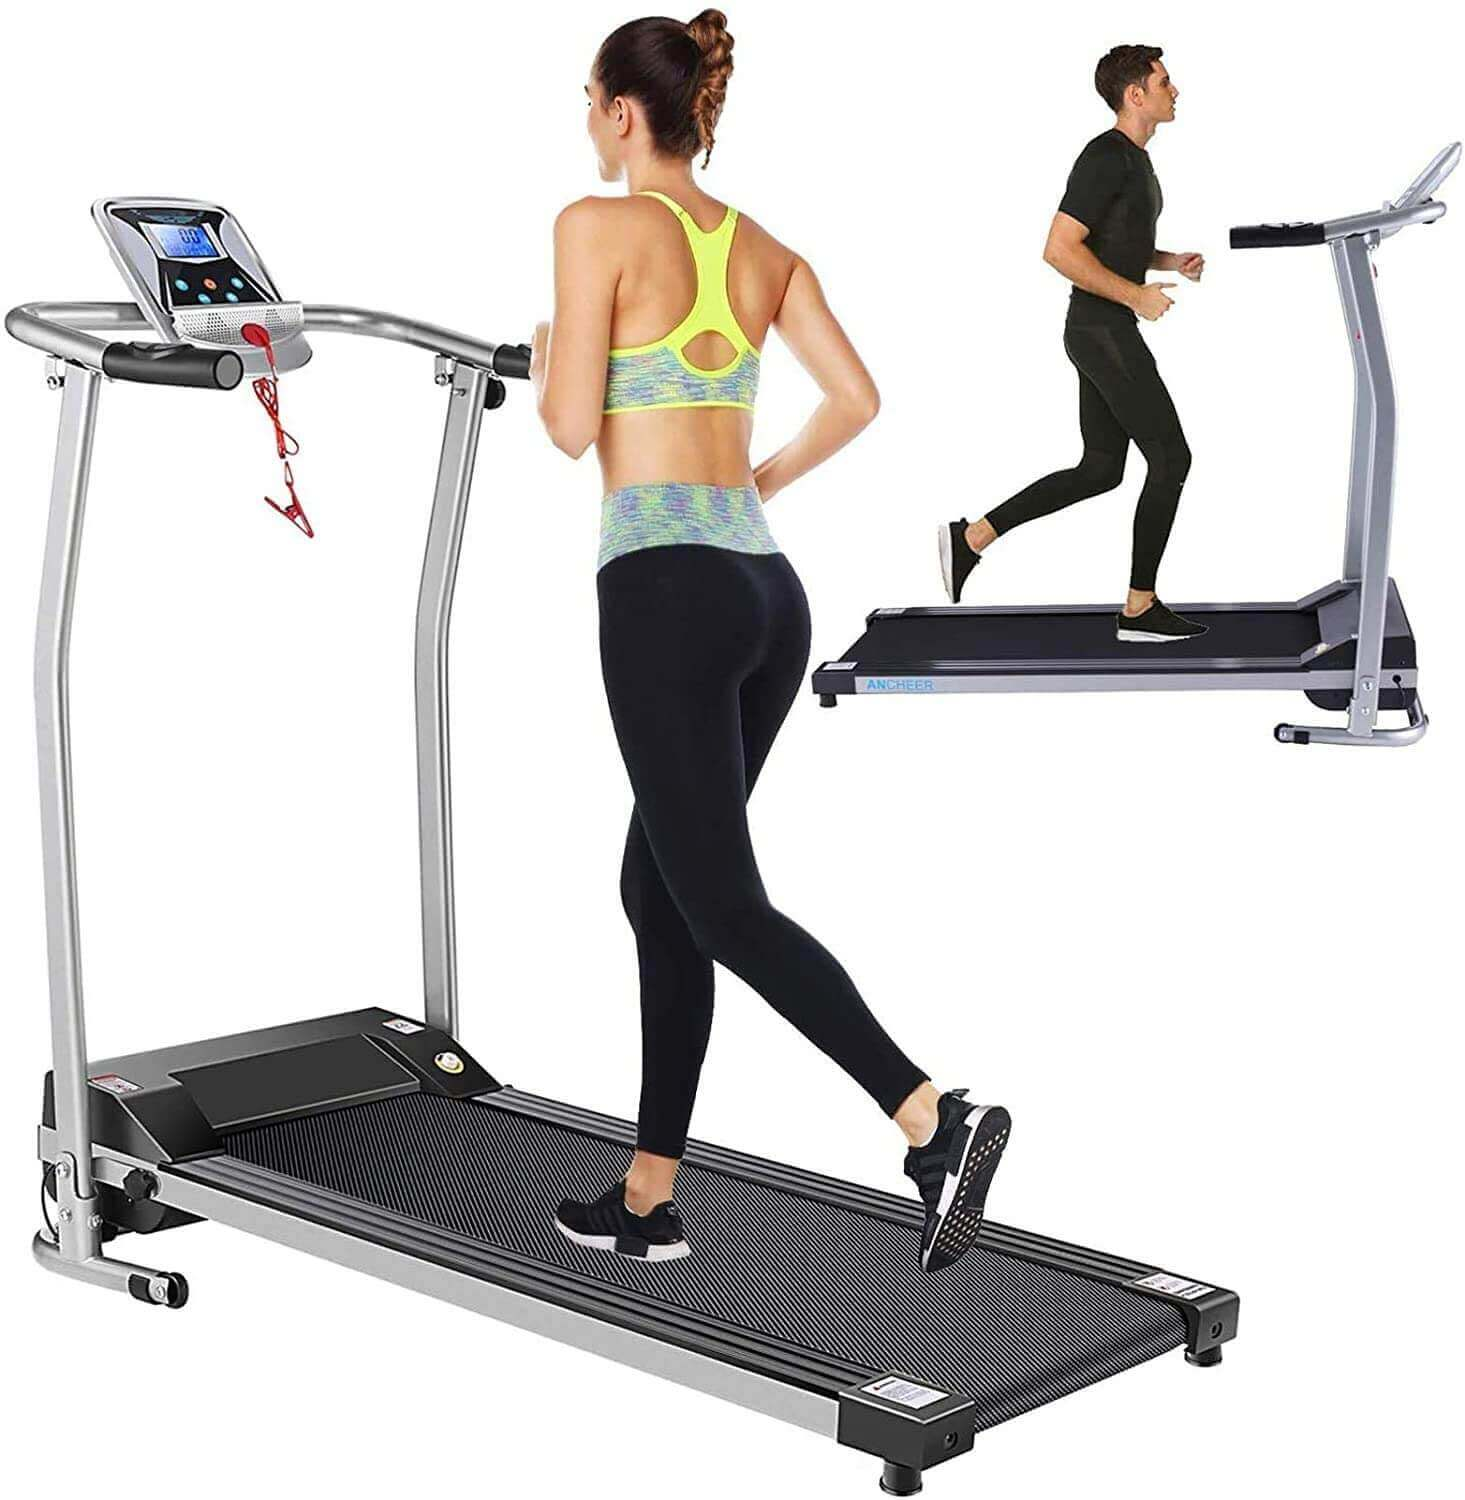 Aceshin Folding Electric Treadmill with LCD Monitor, Pulse Grip, and Safe Key - Exercise Machine for Home